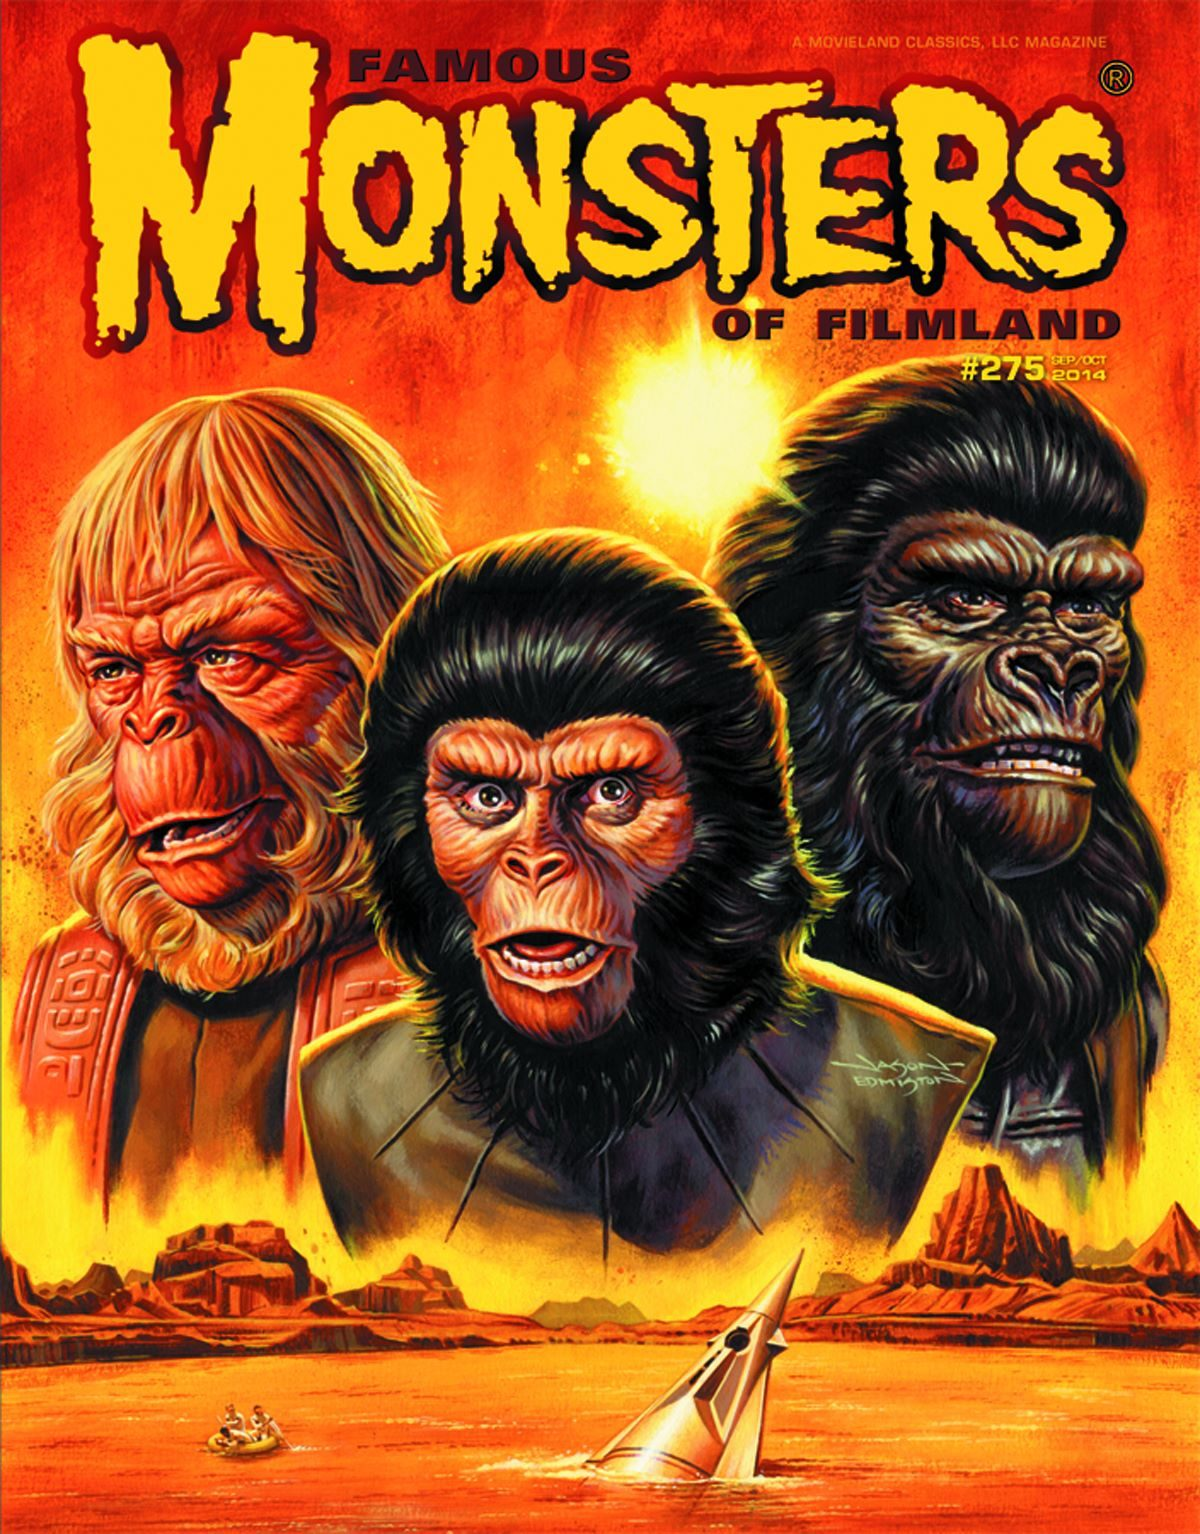 Famous Monsters of Filmland, magazine, horror films, Planet of the Apes